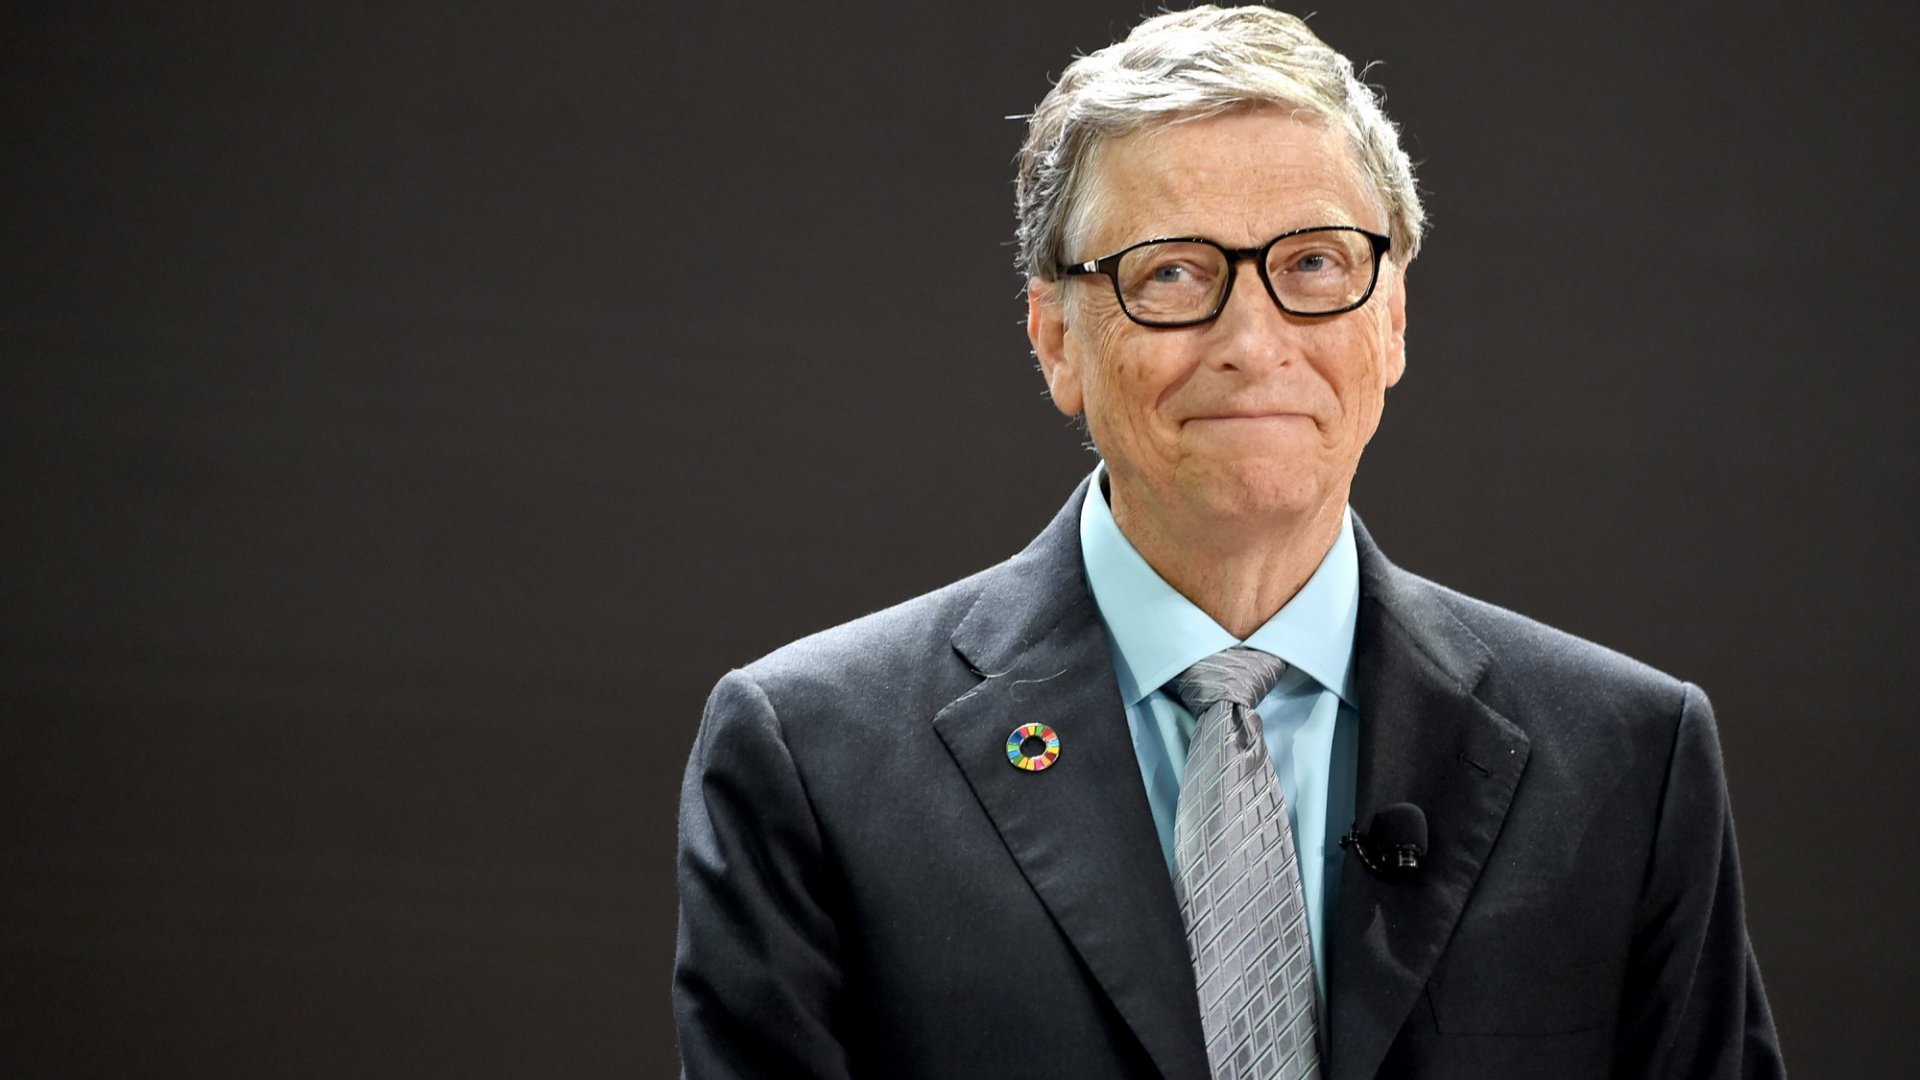 Here's the Crucial Thing Bill Gates Did at Exactly Mark Zuckerberg's Age Now